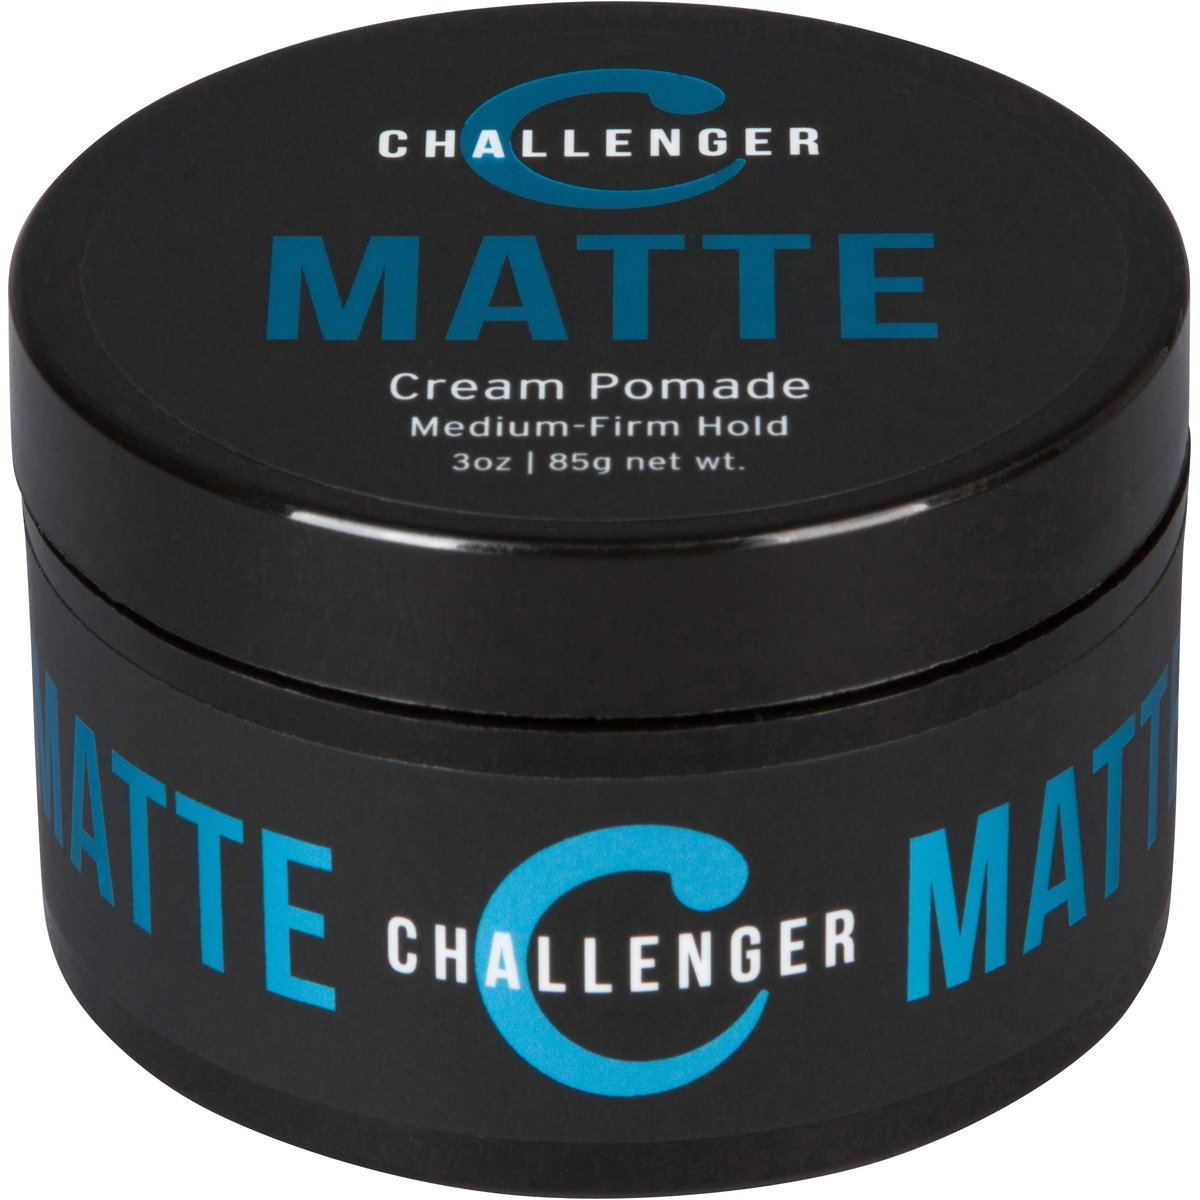 Matte Cream Pomade - Challenger 3oz - Medium Firm Hold - Water Based, Clean & Subtle Scent, Travel Friendly. Hair Wax, Fiber, Clay, Paste, Styling Cream All In One